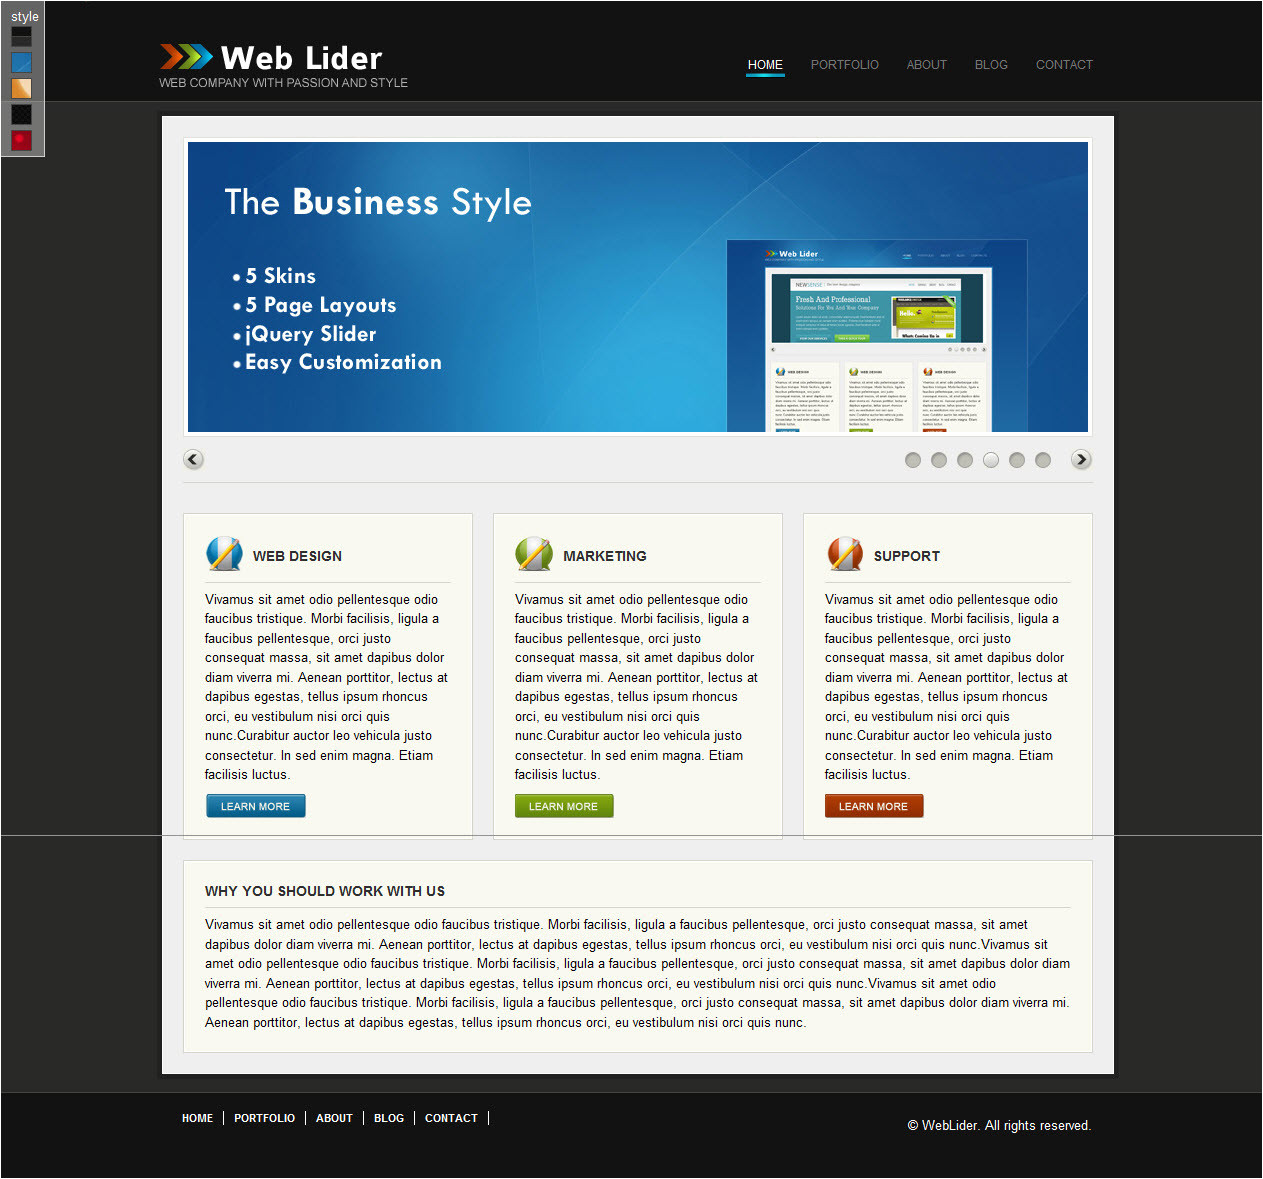 What WordPress Template is This Wptemplates Com Best WordPress Templates and themes Part 3